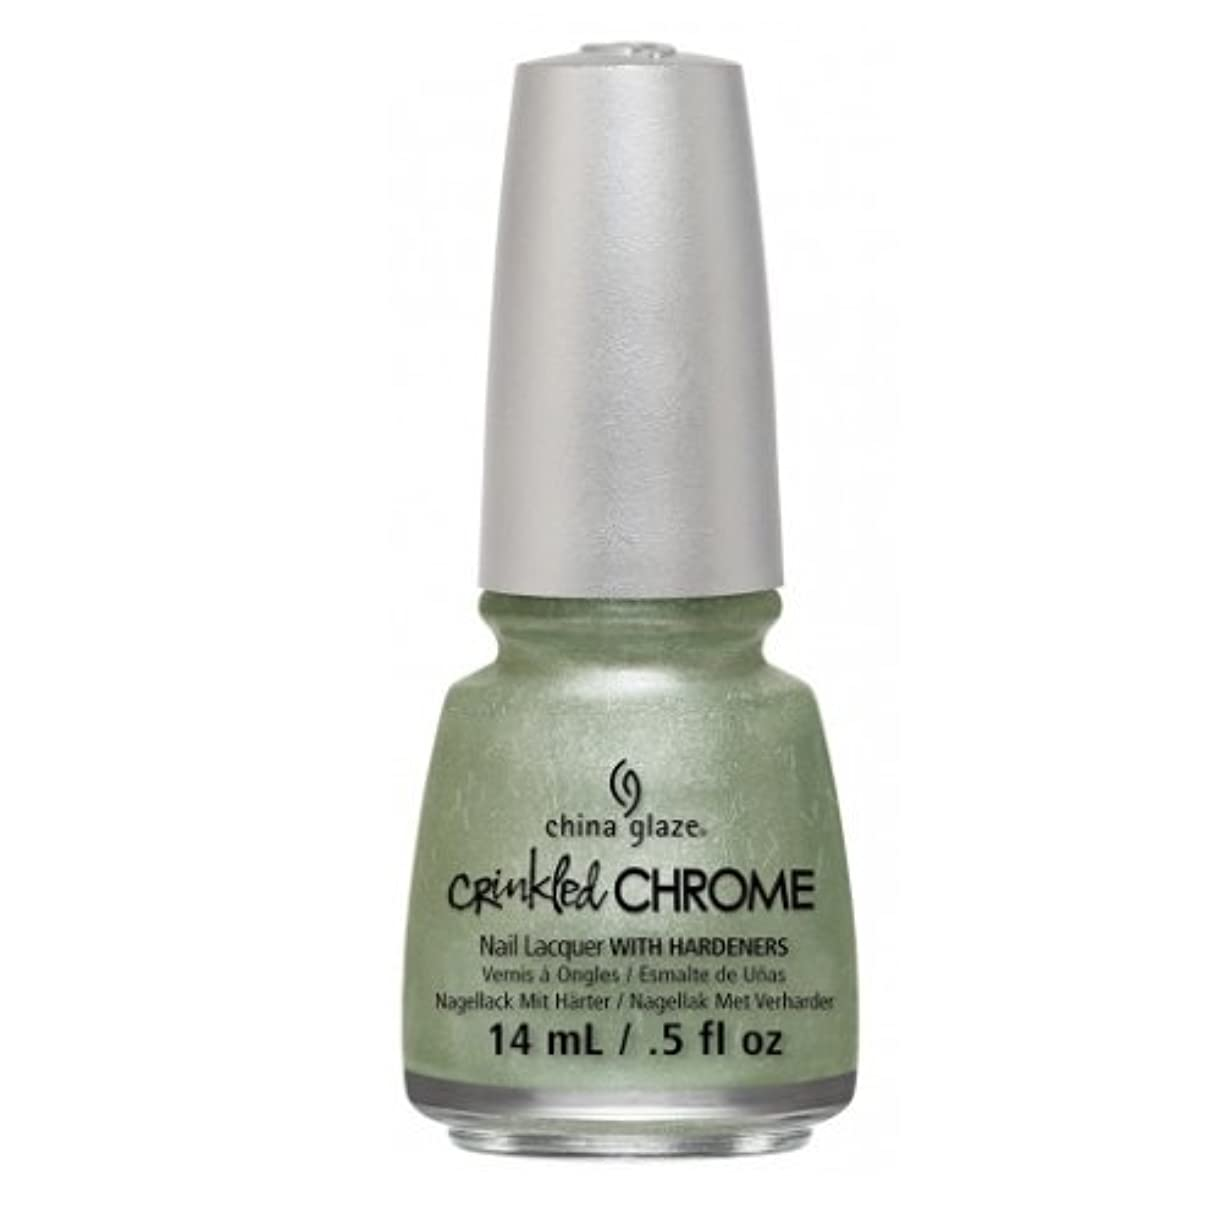 素晴らしき換気アナウンサー(3 Pack) CHINA GLAZE Nail Lacquer - Crinkled Chrome - Wrinkling the Sheets (並行輸入品)